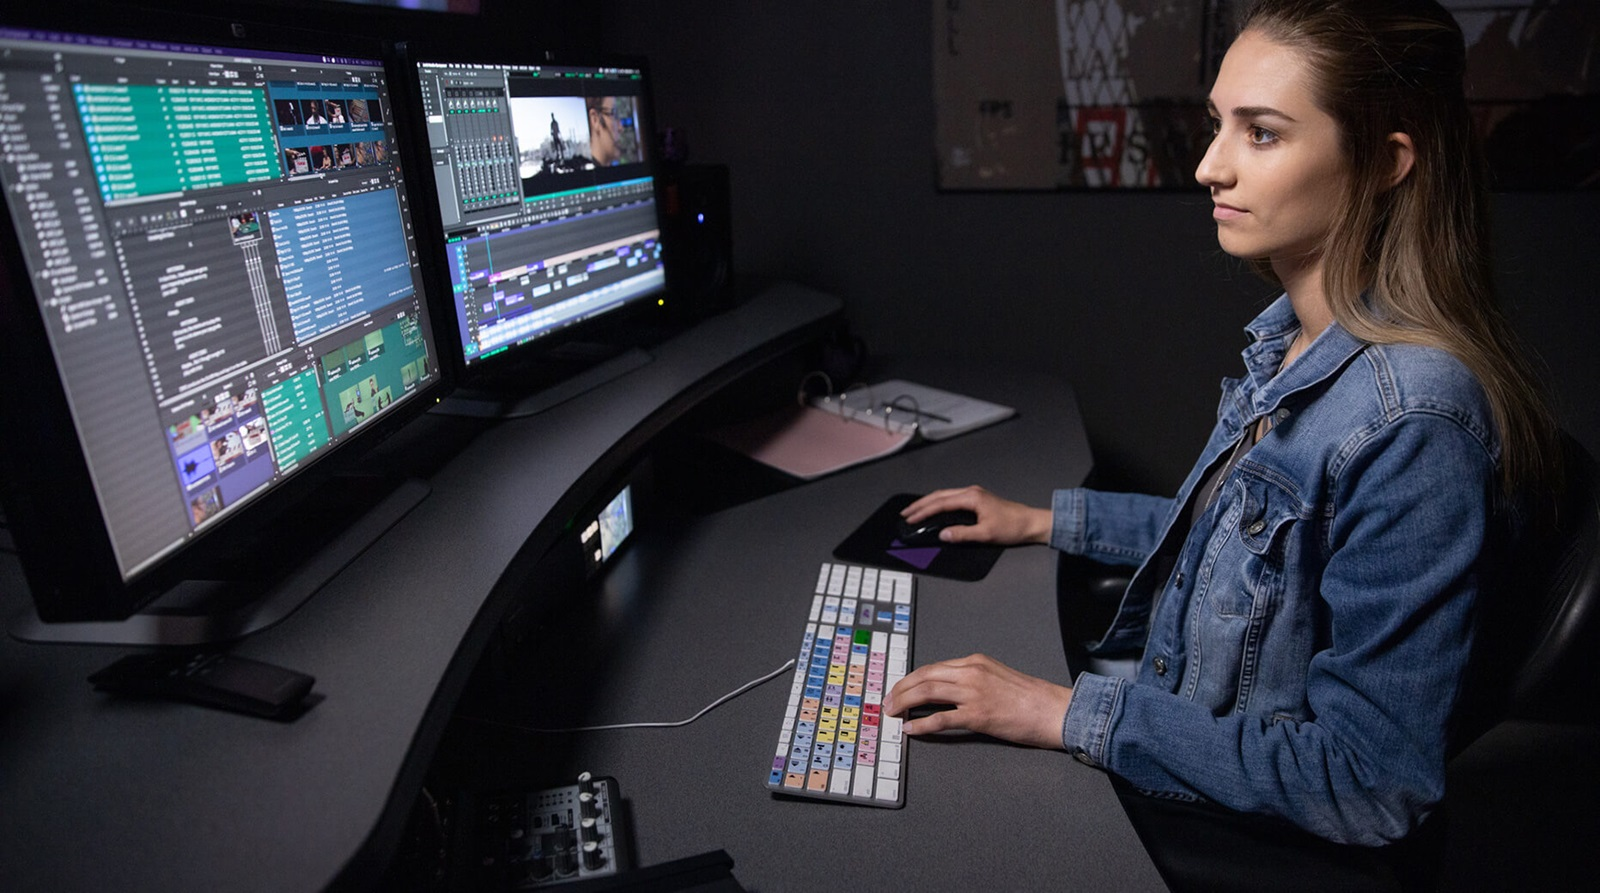 using an asset manager in video editing